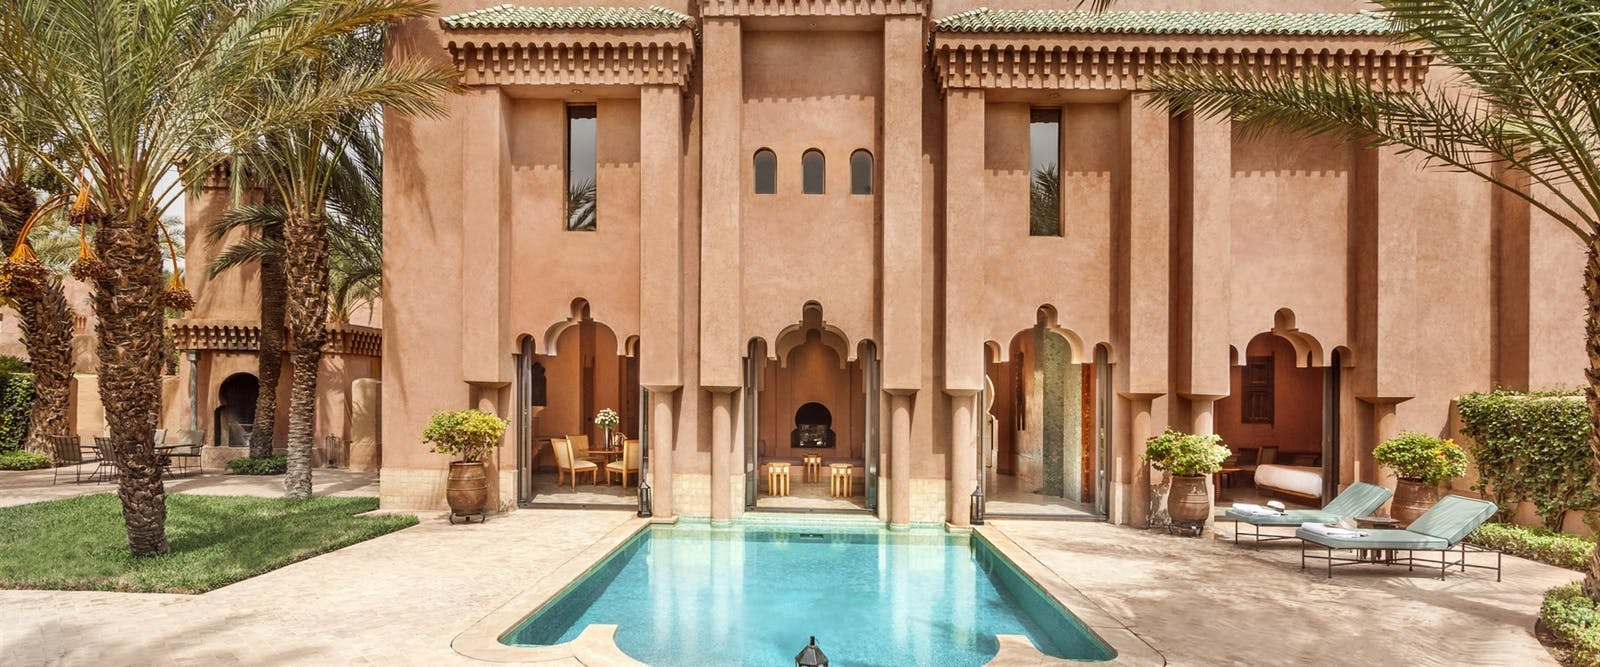 Maisons Jardin Garden Pool at Amanjena, Marrakech, Morocco